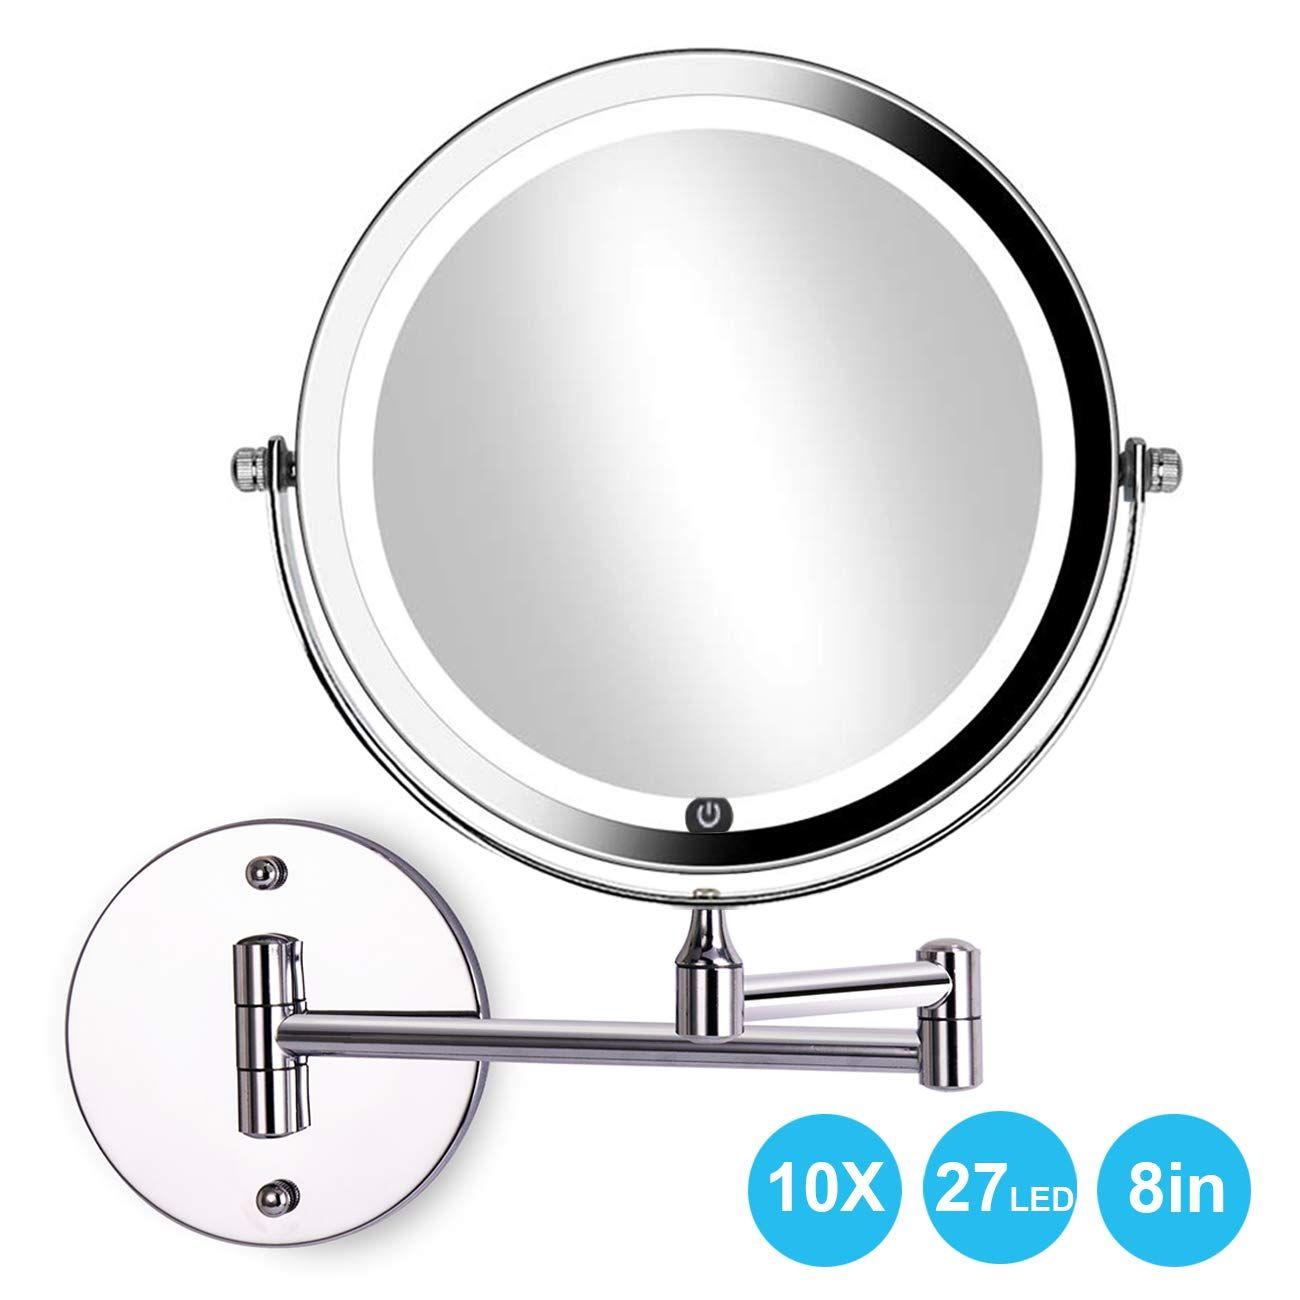 Acolar Led 8in Wall Mounted Make Wall Mounted Makeup Mirror Makeup Mirror With Lights Mirror With Lights